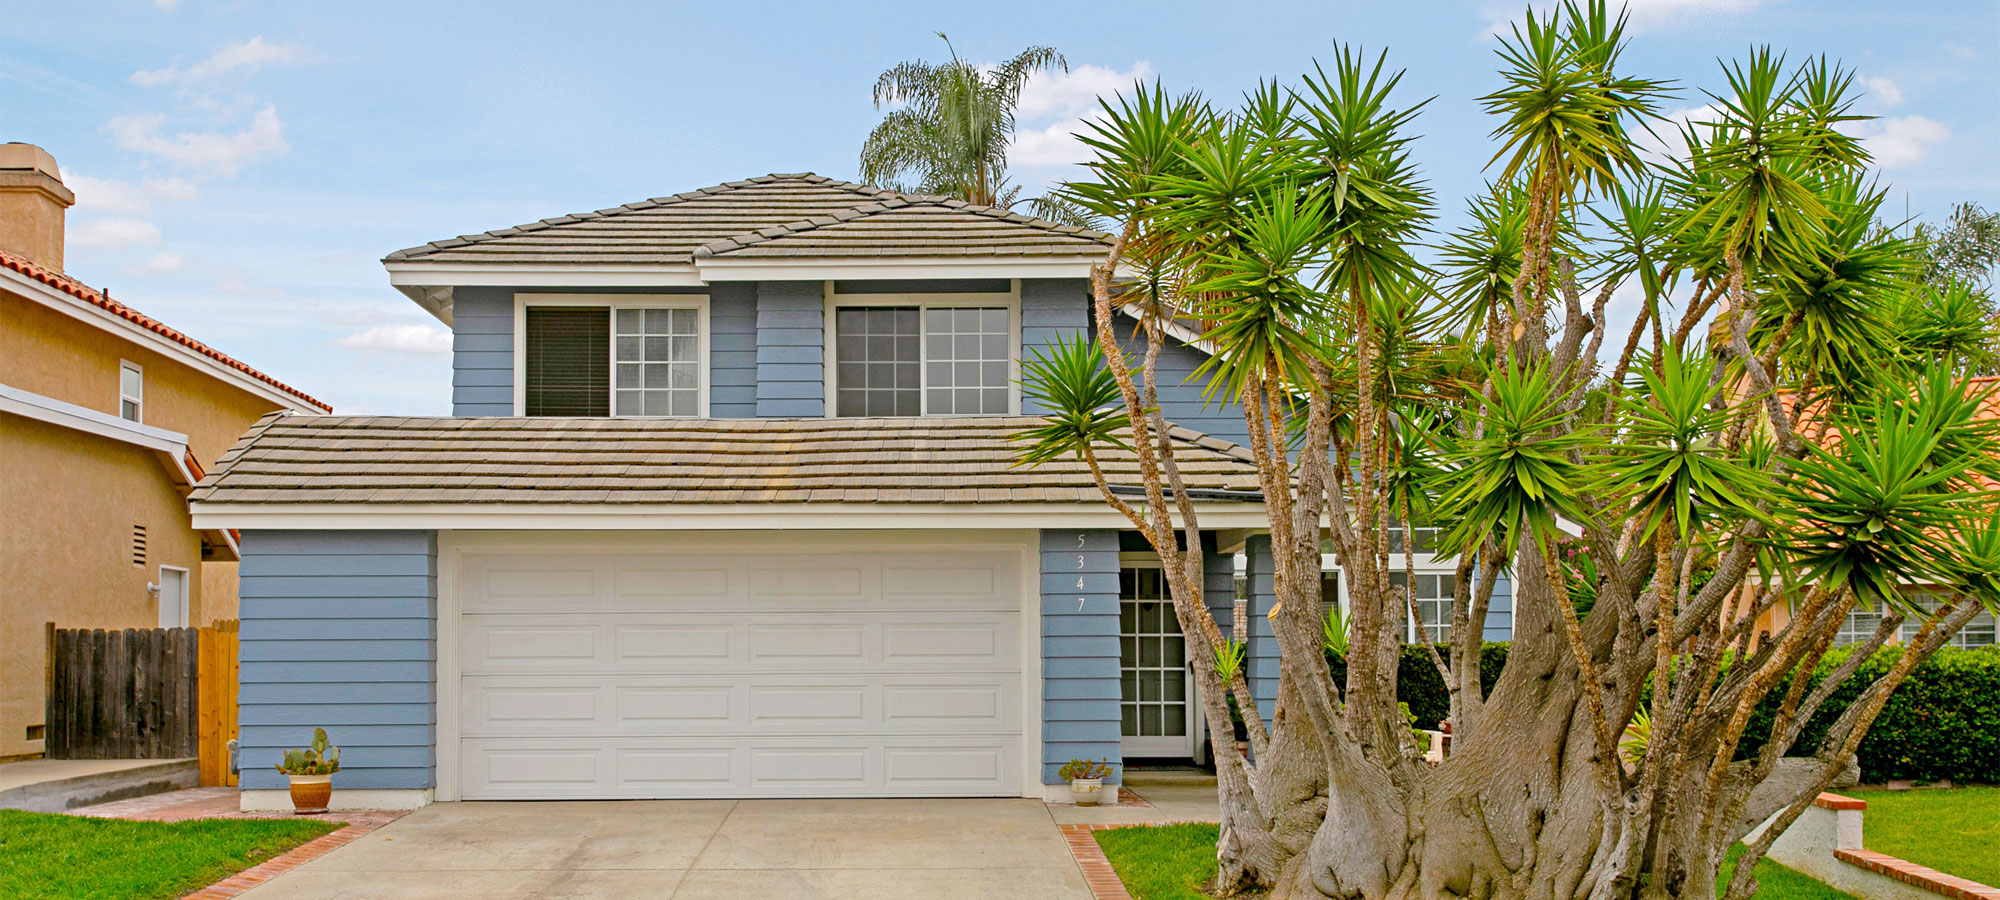 5347 Raspberry Way Oceanside, CA 92057